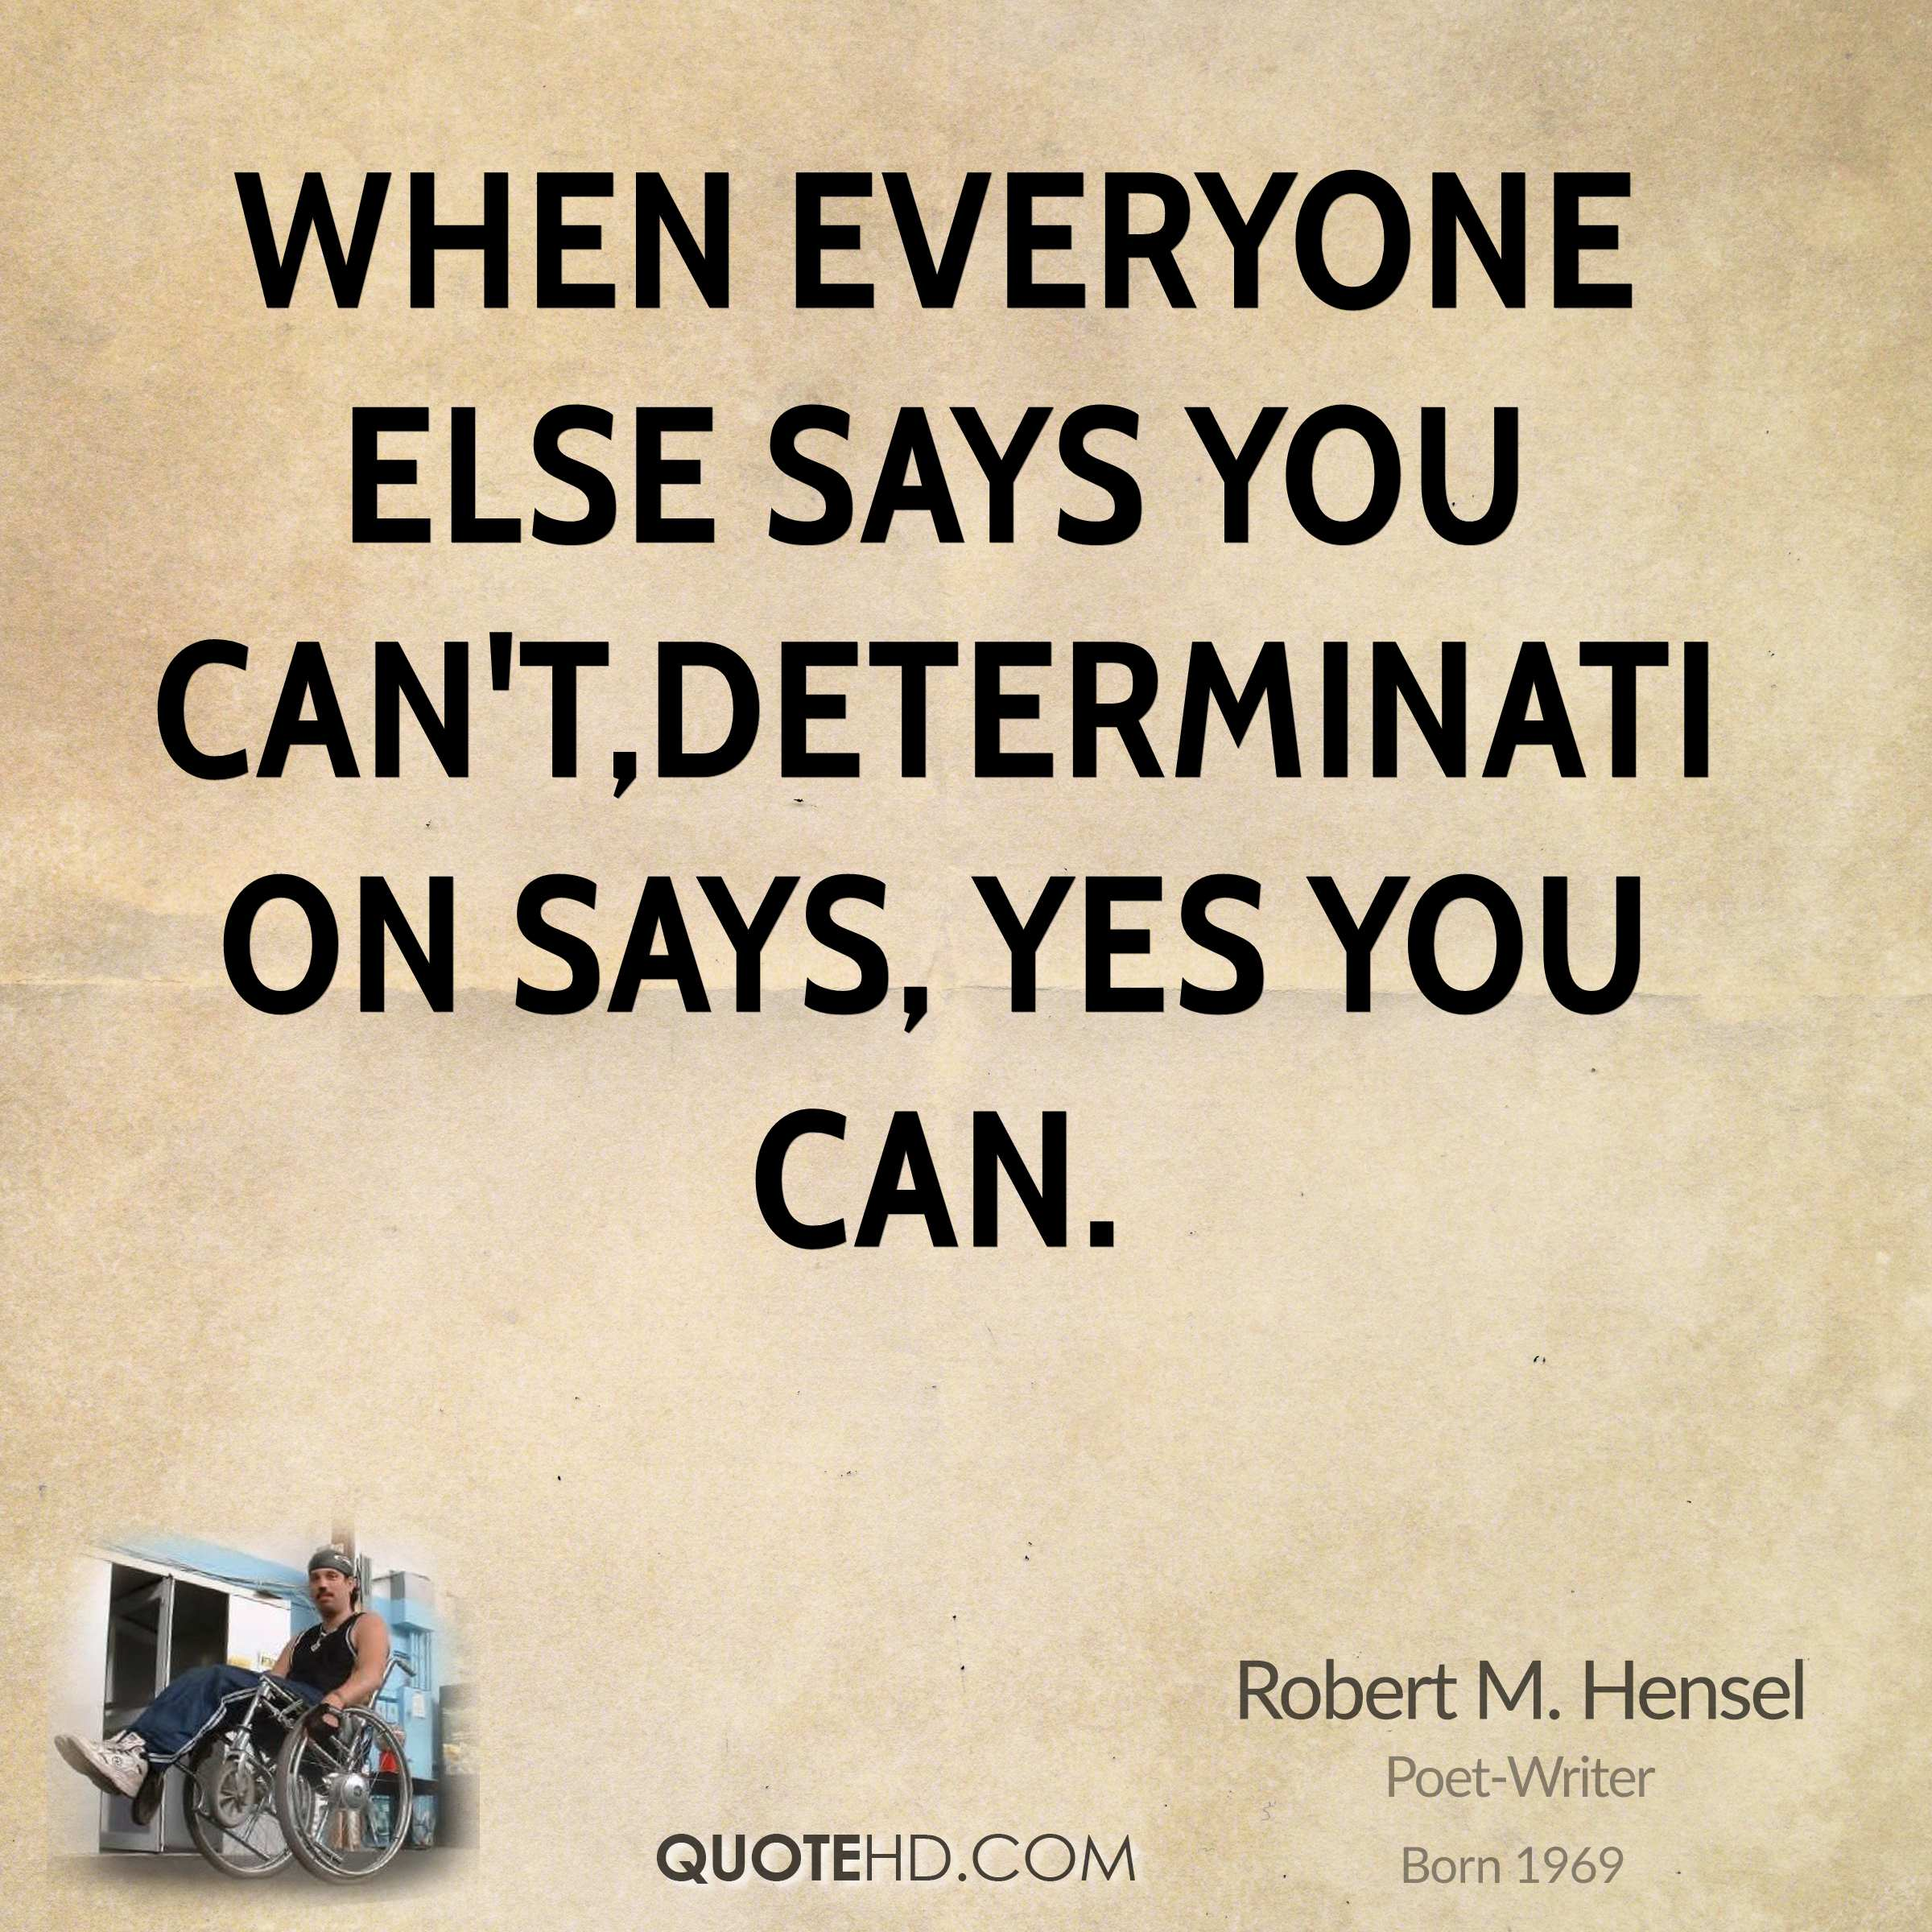 When everyone else says you can't,determination says, yes you can.